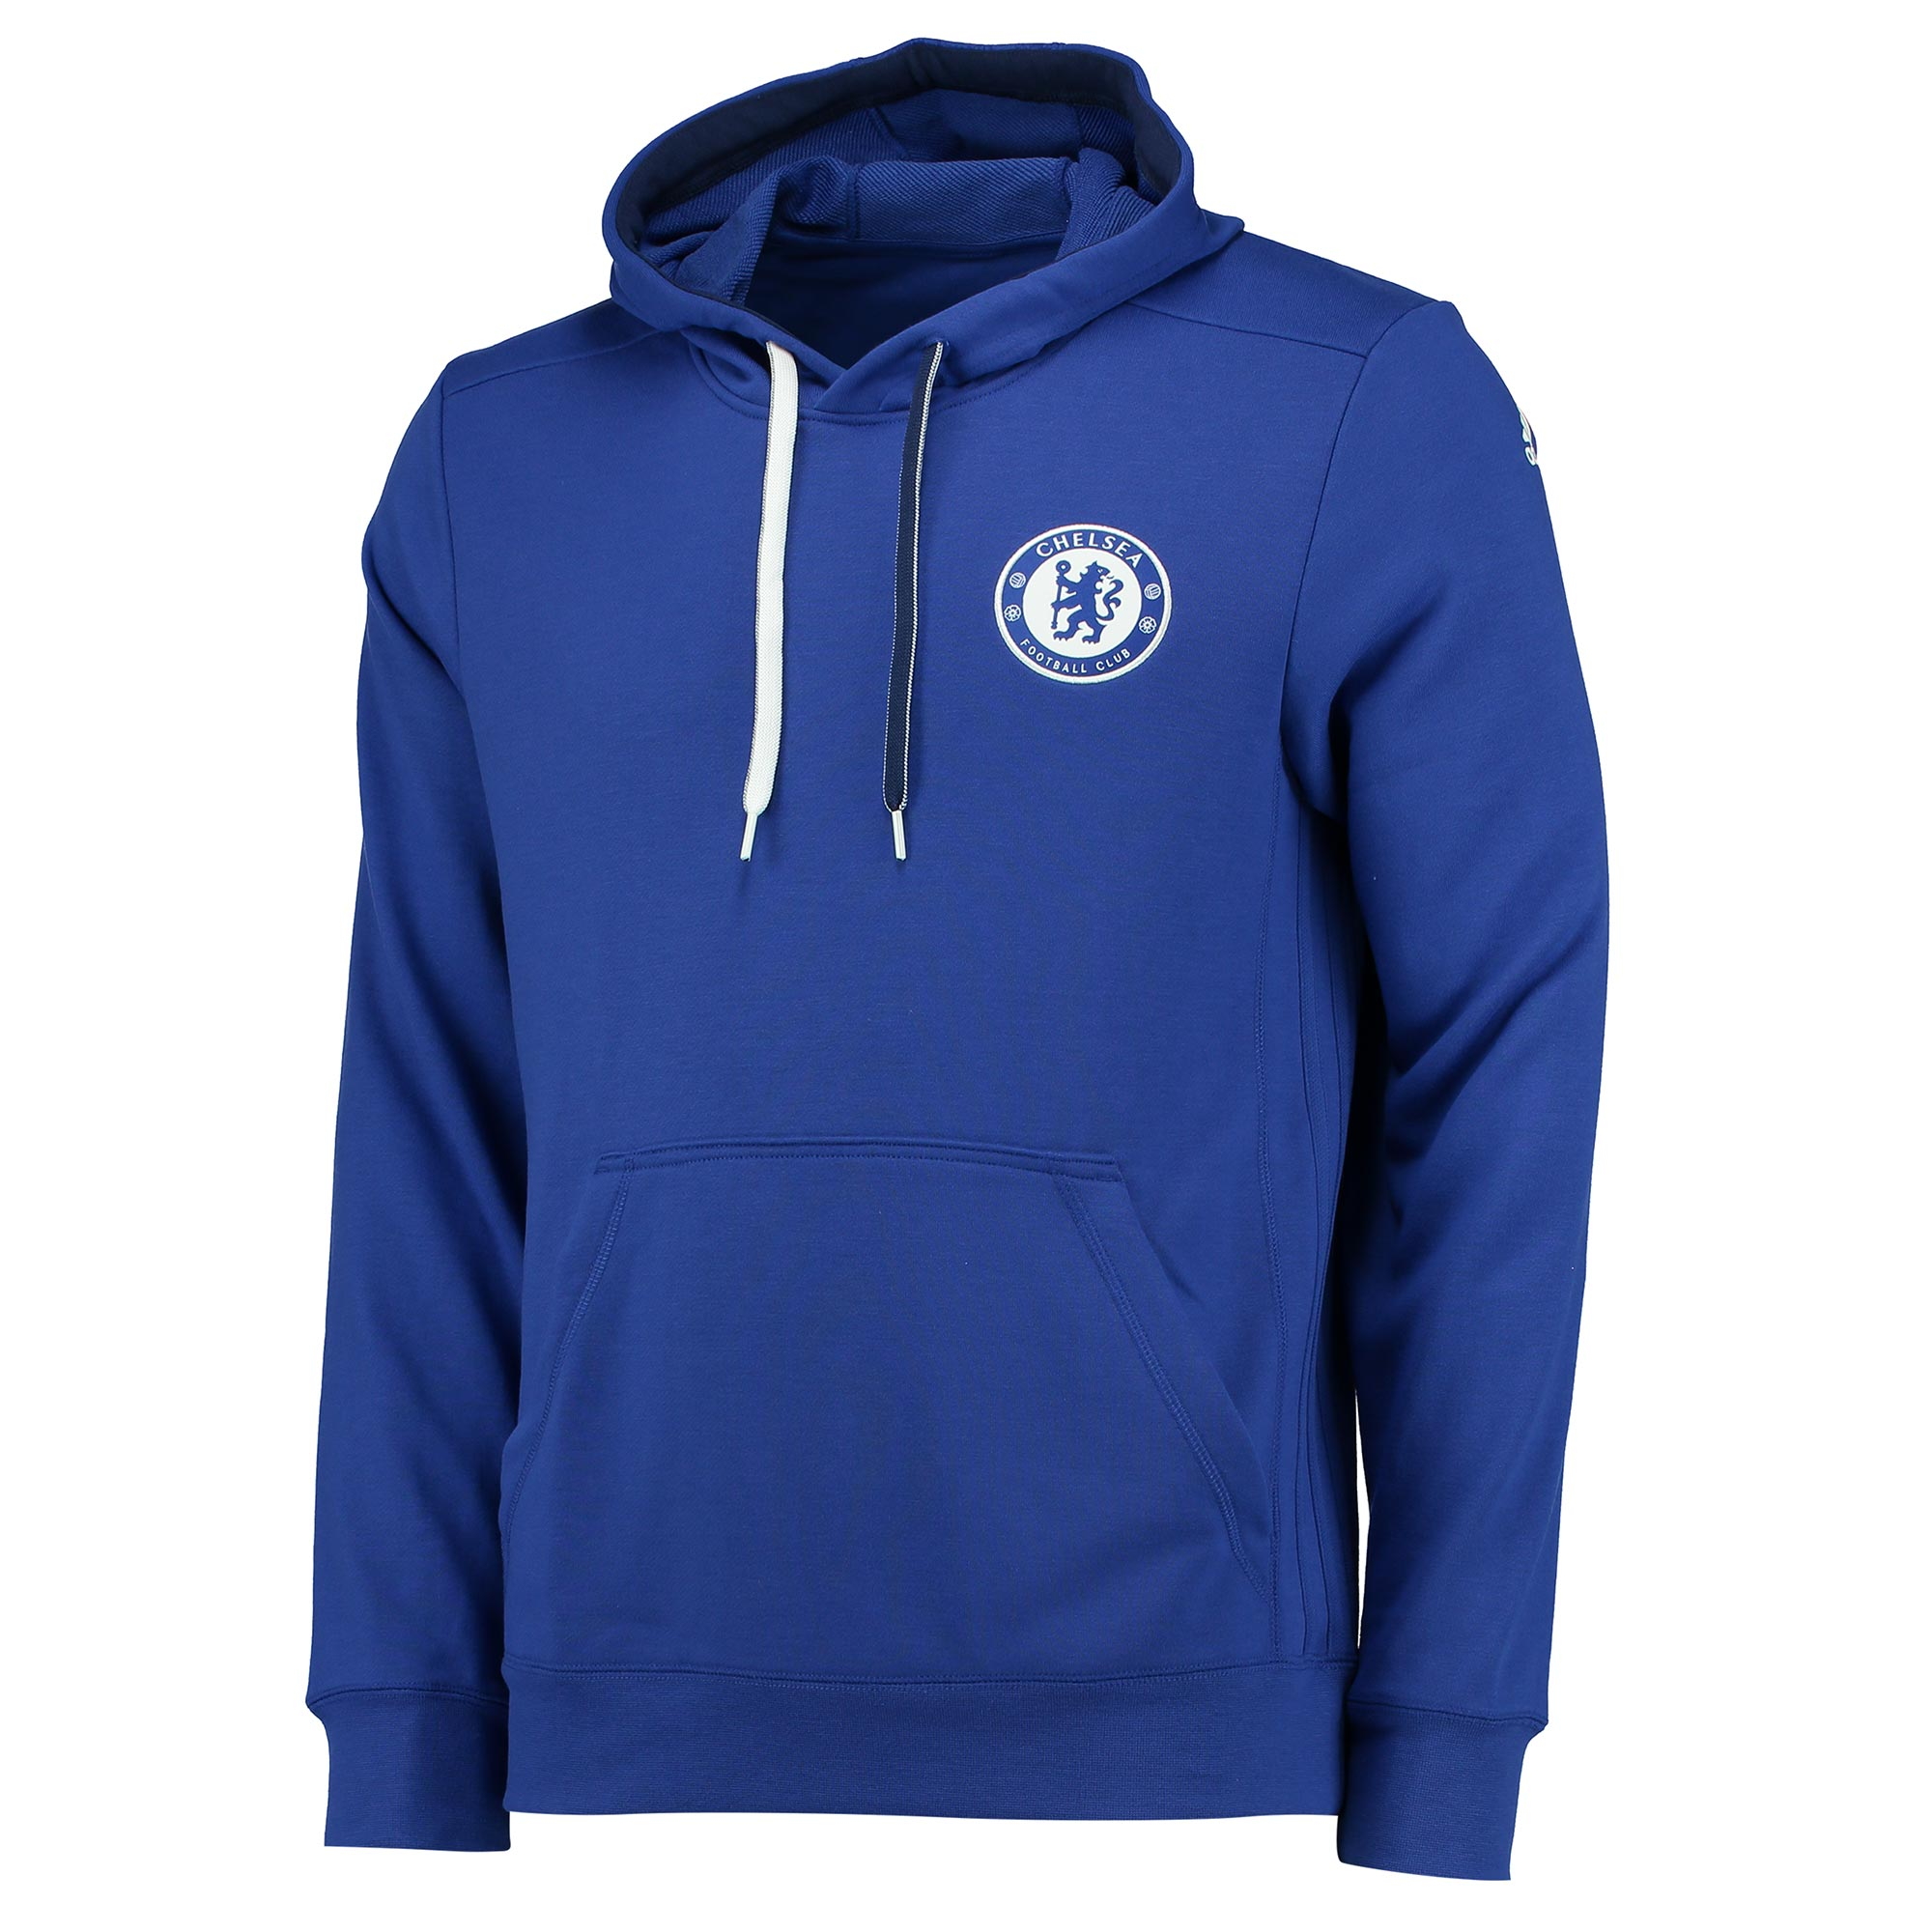 Chelsea Cup Training Hooded Sweatshirt - Blue  Show support for the boys from Stamford Bridge in this Chelsea Cup Training Hooded Sweatshirt.    This official, slim fit sweatshirt with drawcord-adjustable hood carries a Chelsea FC crest on the chest, allowing true Blues to put their club pride on full display in training.   Details: • Slim fit w/kangaroo pocket • Drawcord-adjustable hood • Ribbed cuffs and hem • adidas 3 Stripe branding on sides • Chelsea FC woven club crest on left chest • Part of adidas sustainable product program • adidas brandmark screen-printed on left sleeve • 75% recycled polyester / 25% viscose French terry